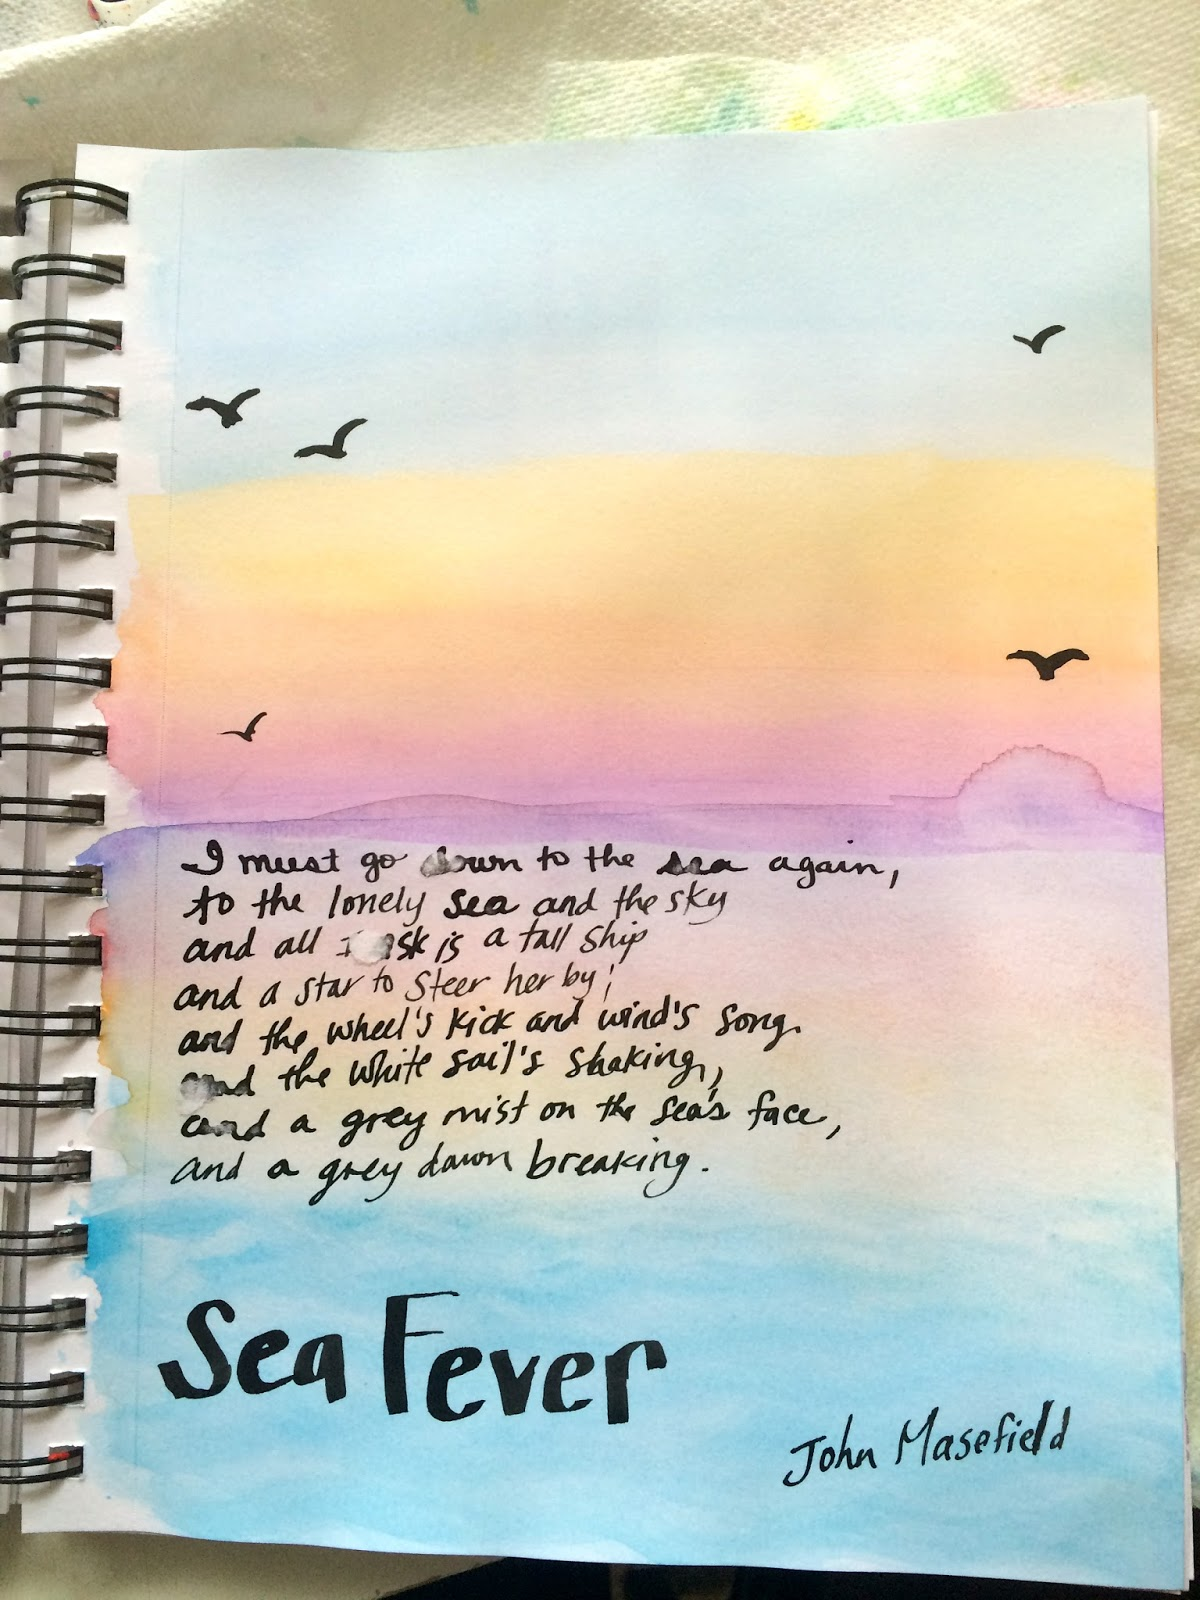 An analysis of sea fever poem by john masefield